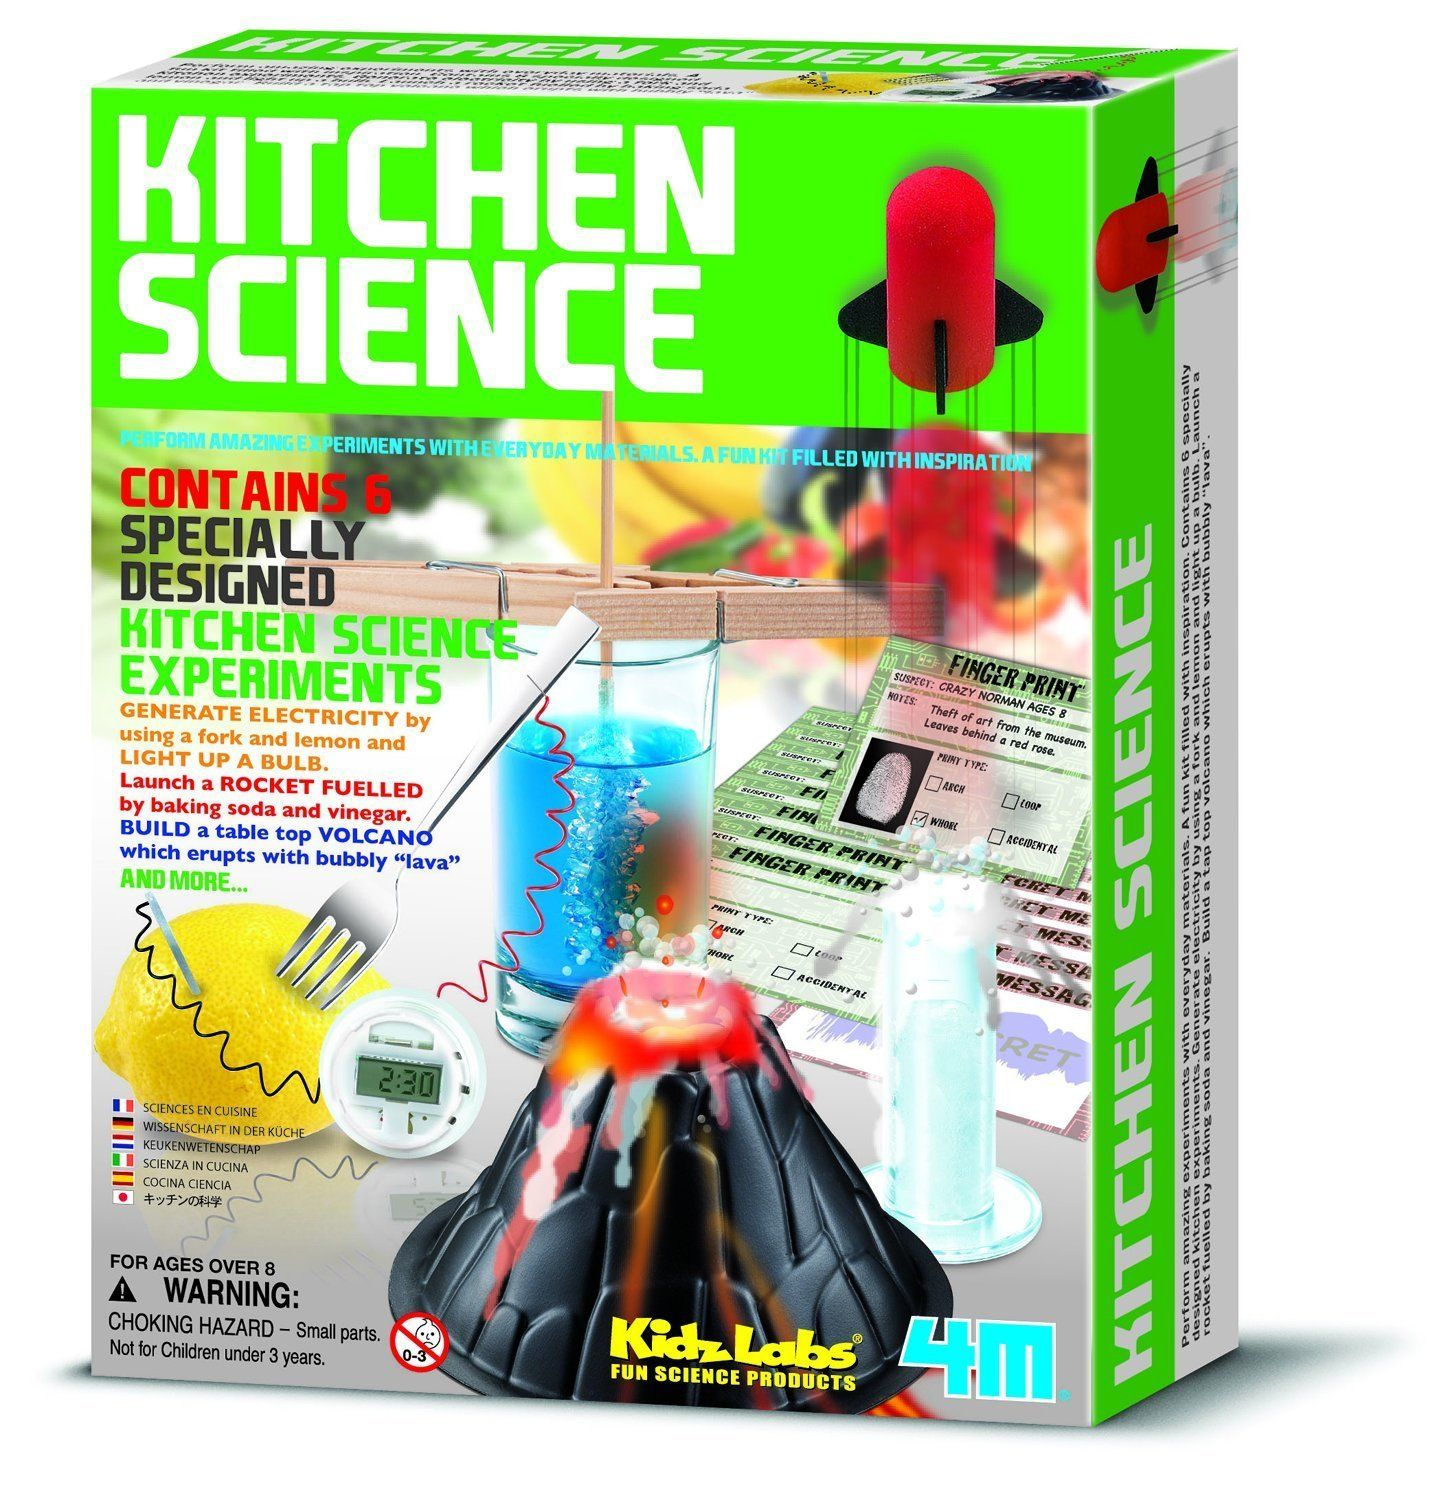 Amazon 4M Kitchen Science Kit Toys & Games